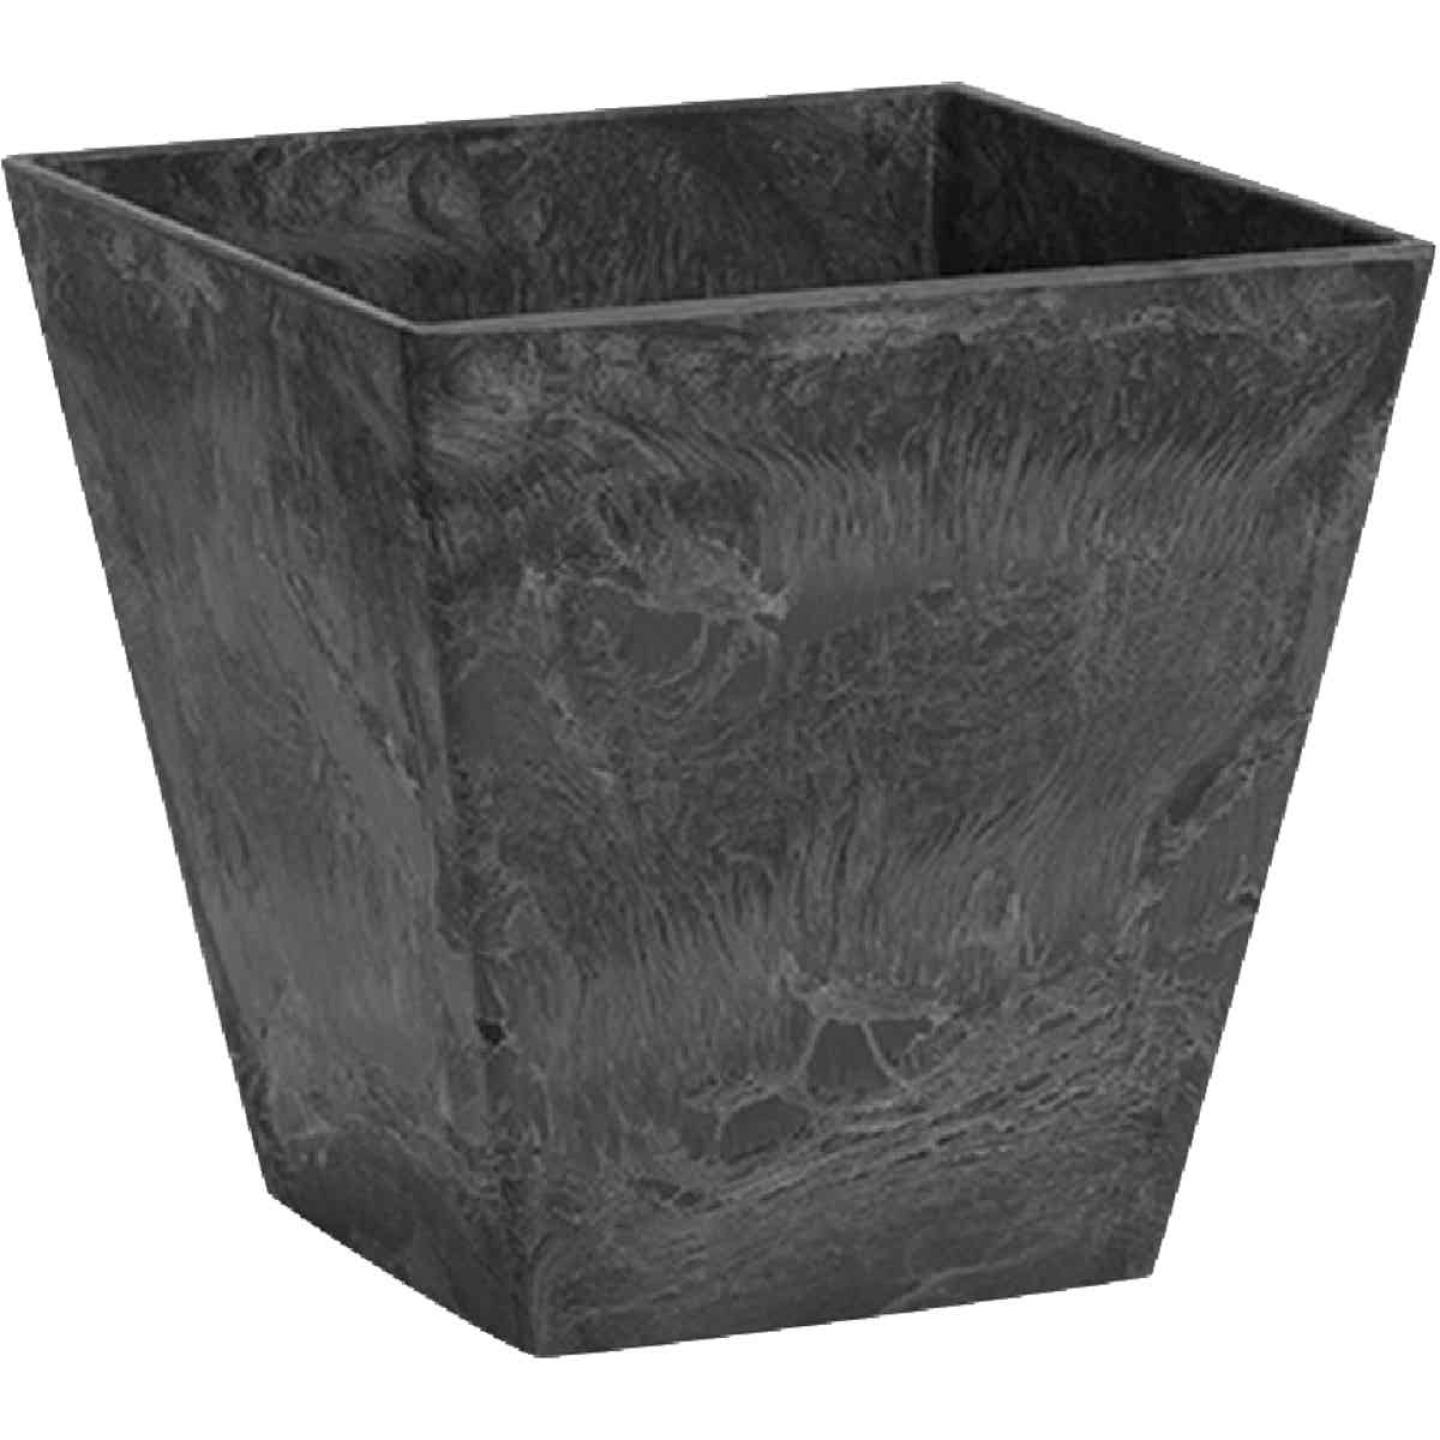 Novelty ArtStone Ella 10 In. W. x 9.75 In. H. x 10 In. L. Black Resin Planter Image 1